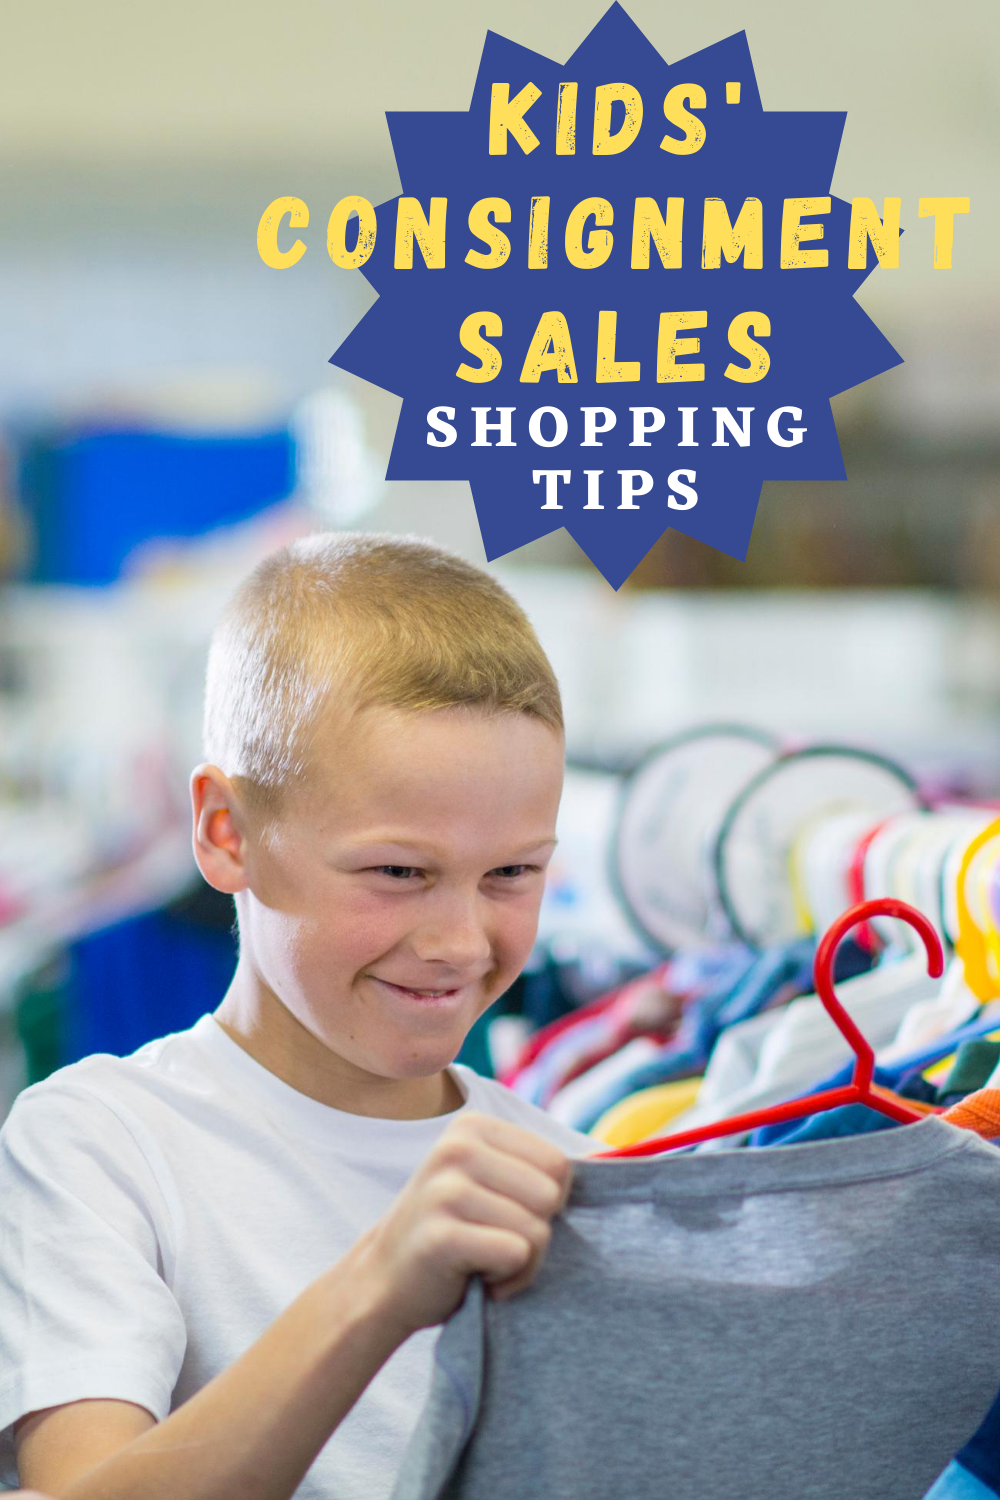 For anyone that is going to venture out to consignment sales this season here are some of my top tips for shopping kids consignment sales!